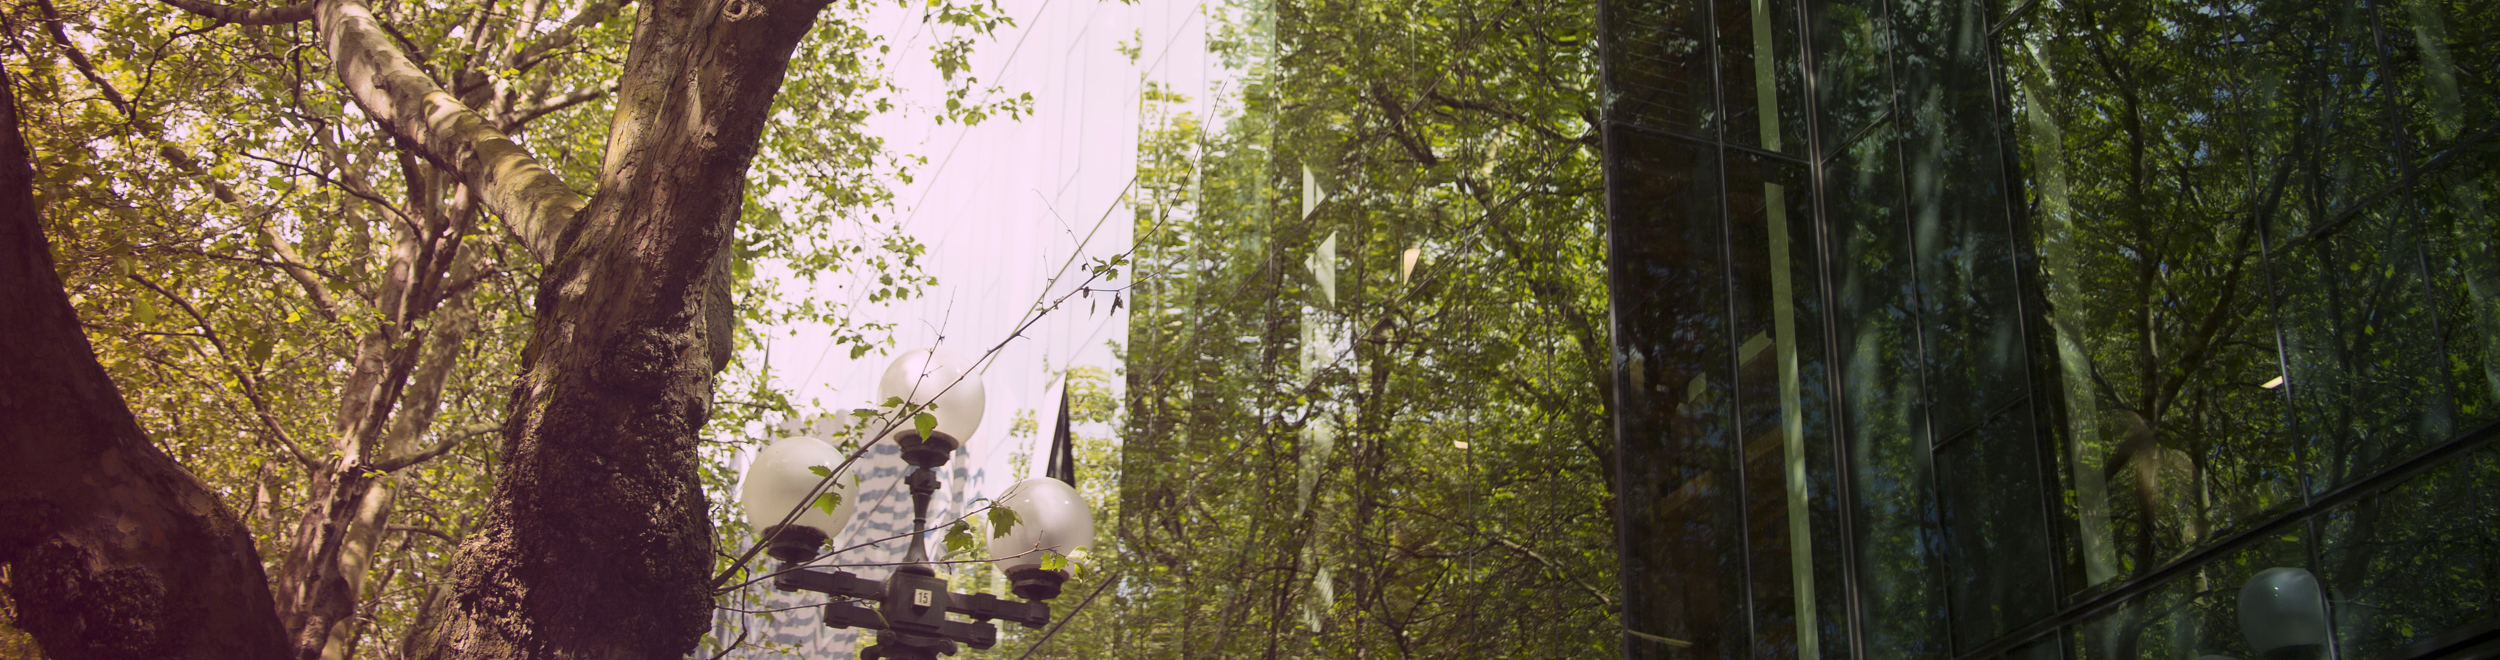 Wide picture of city and trees reflecting at upstream music festival with sensebellum